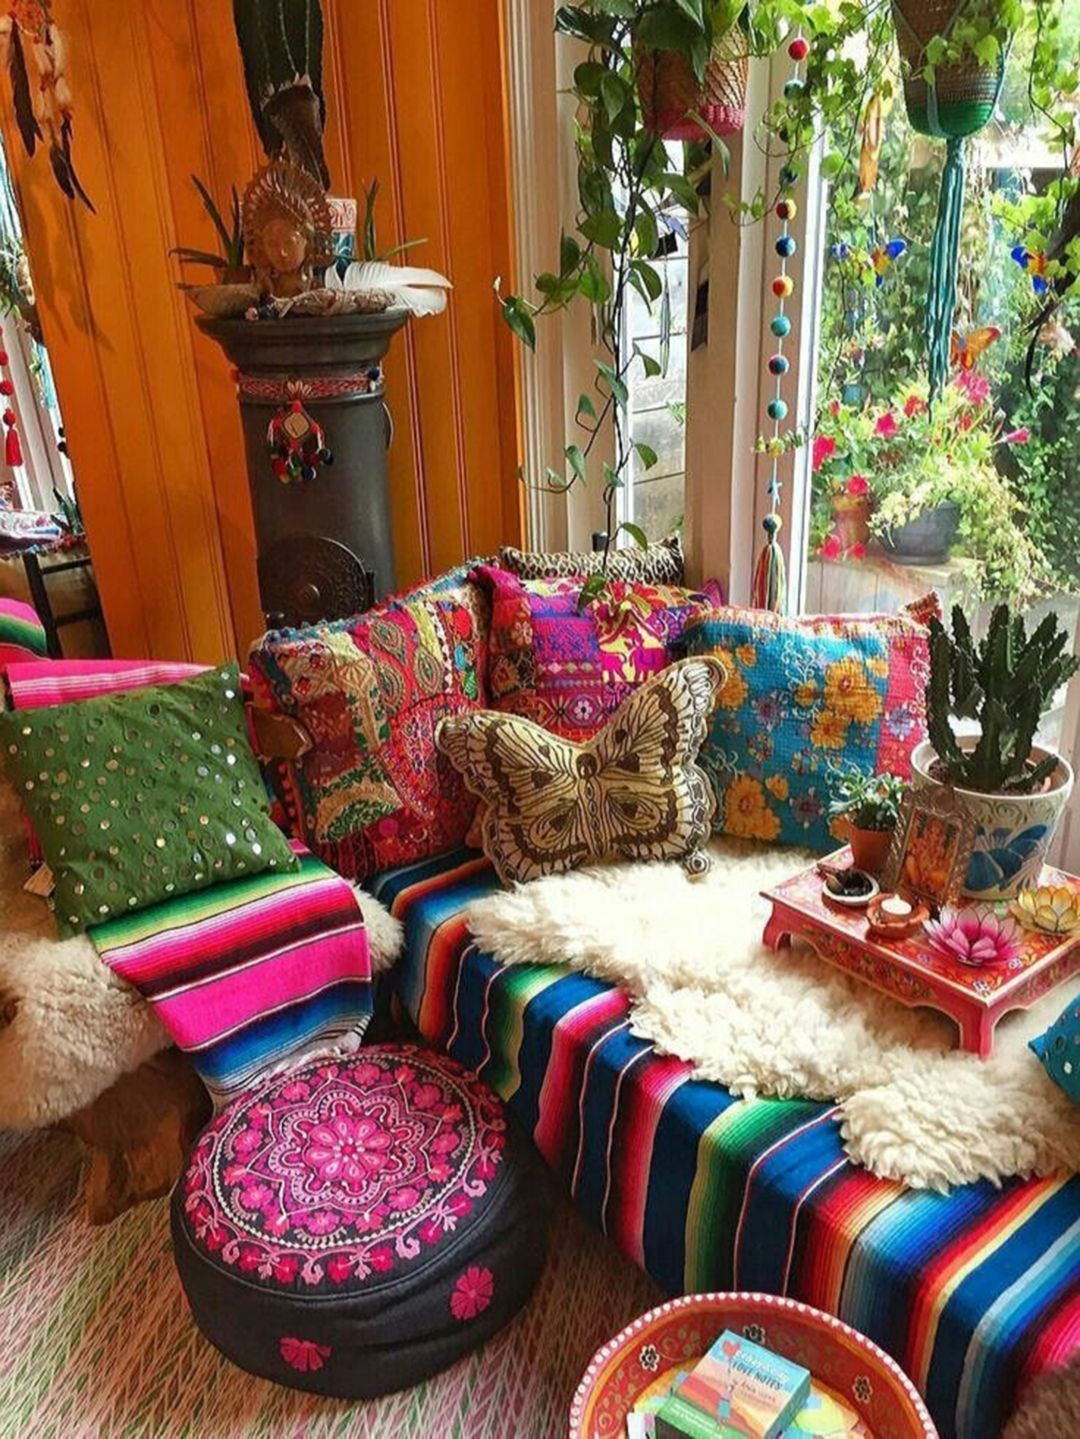 35 chic bohemian decorating ideas for stunning front porch. Black Bedroom Furniture Sets. Home Design Ideas